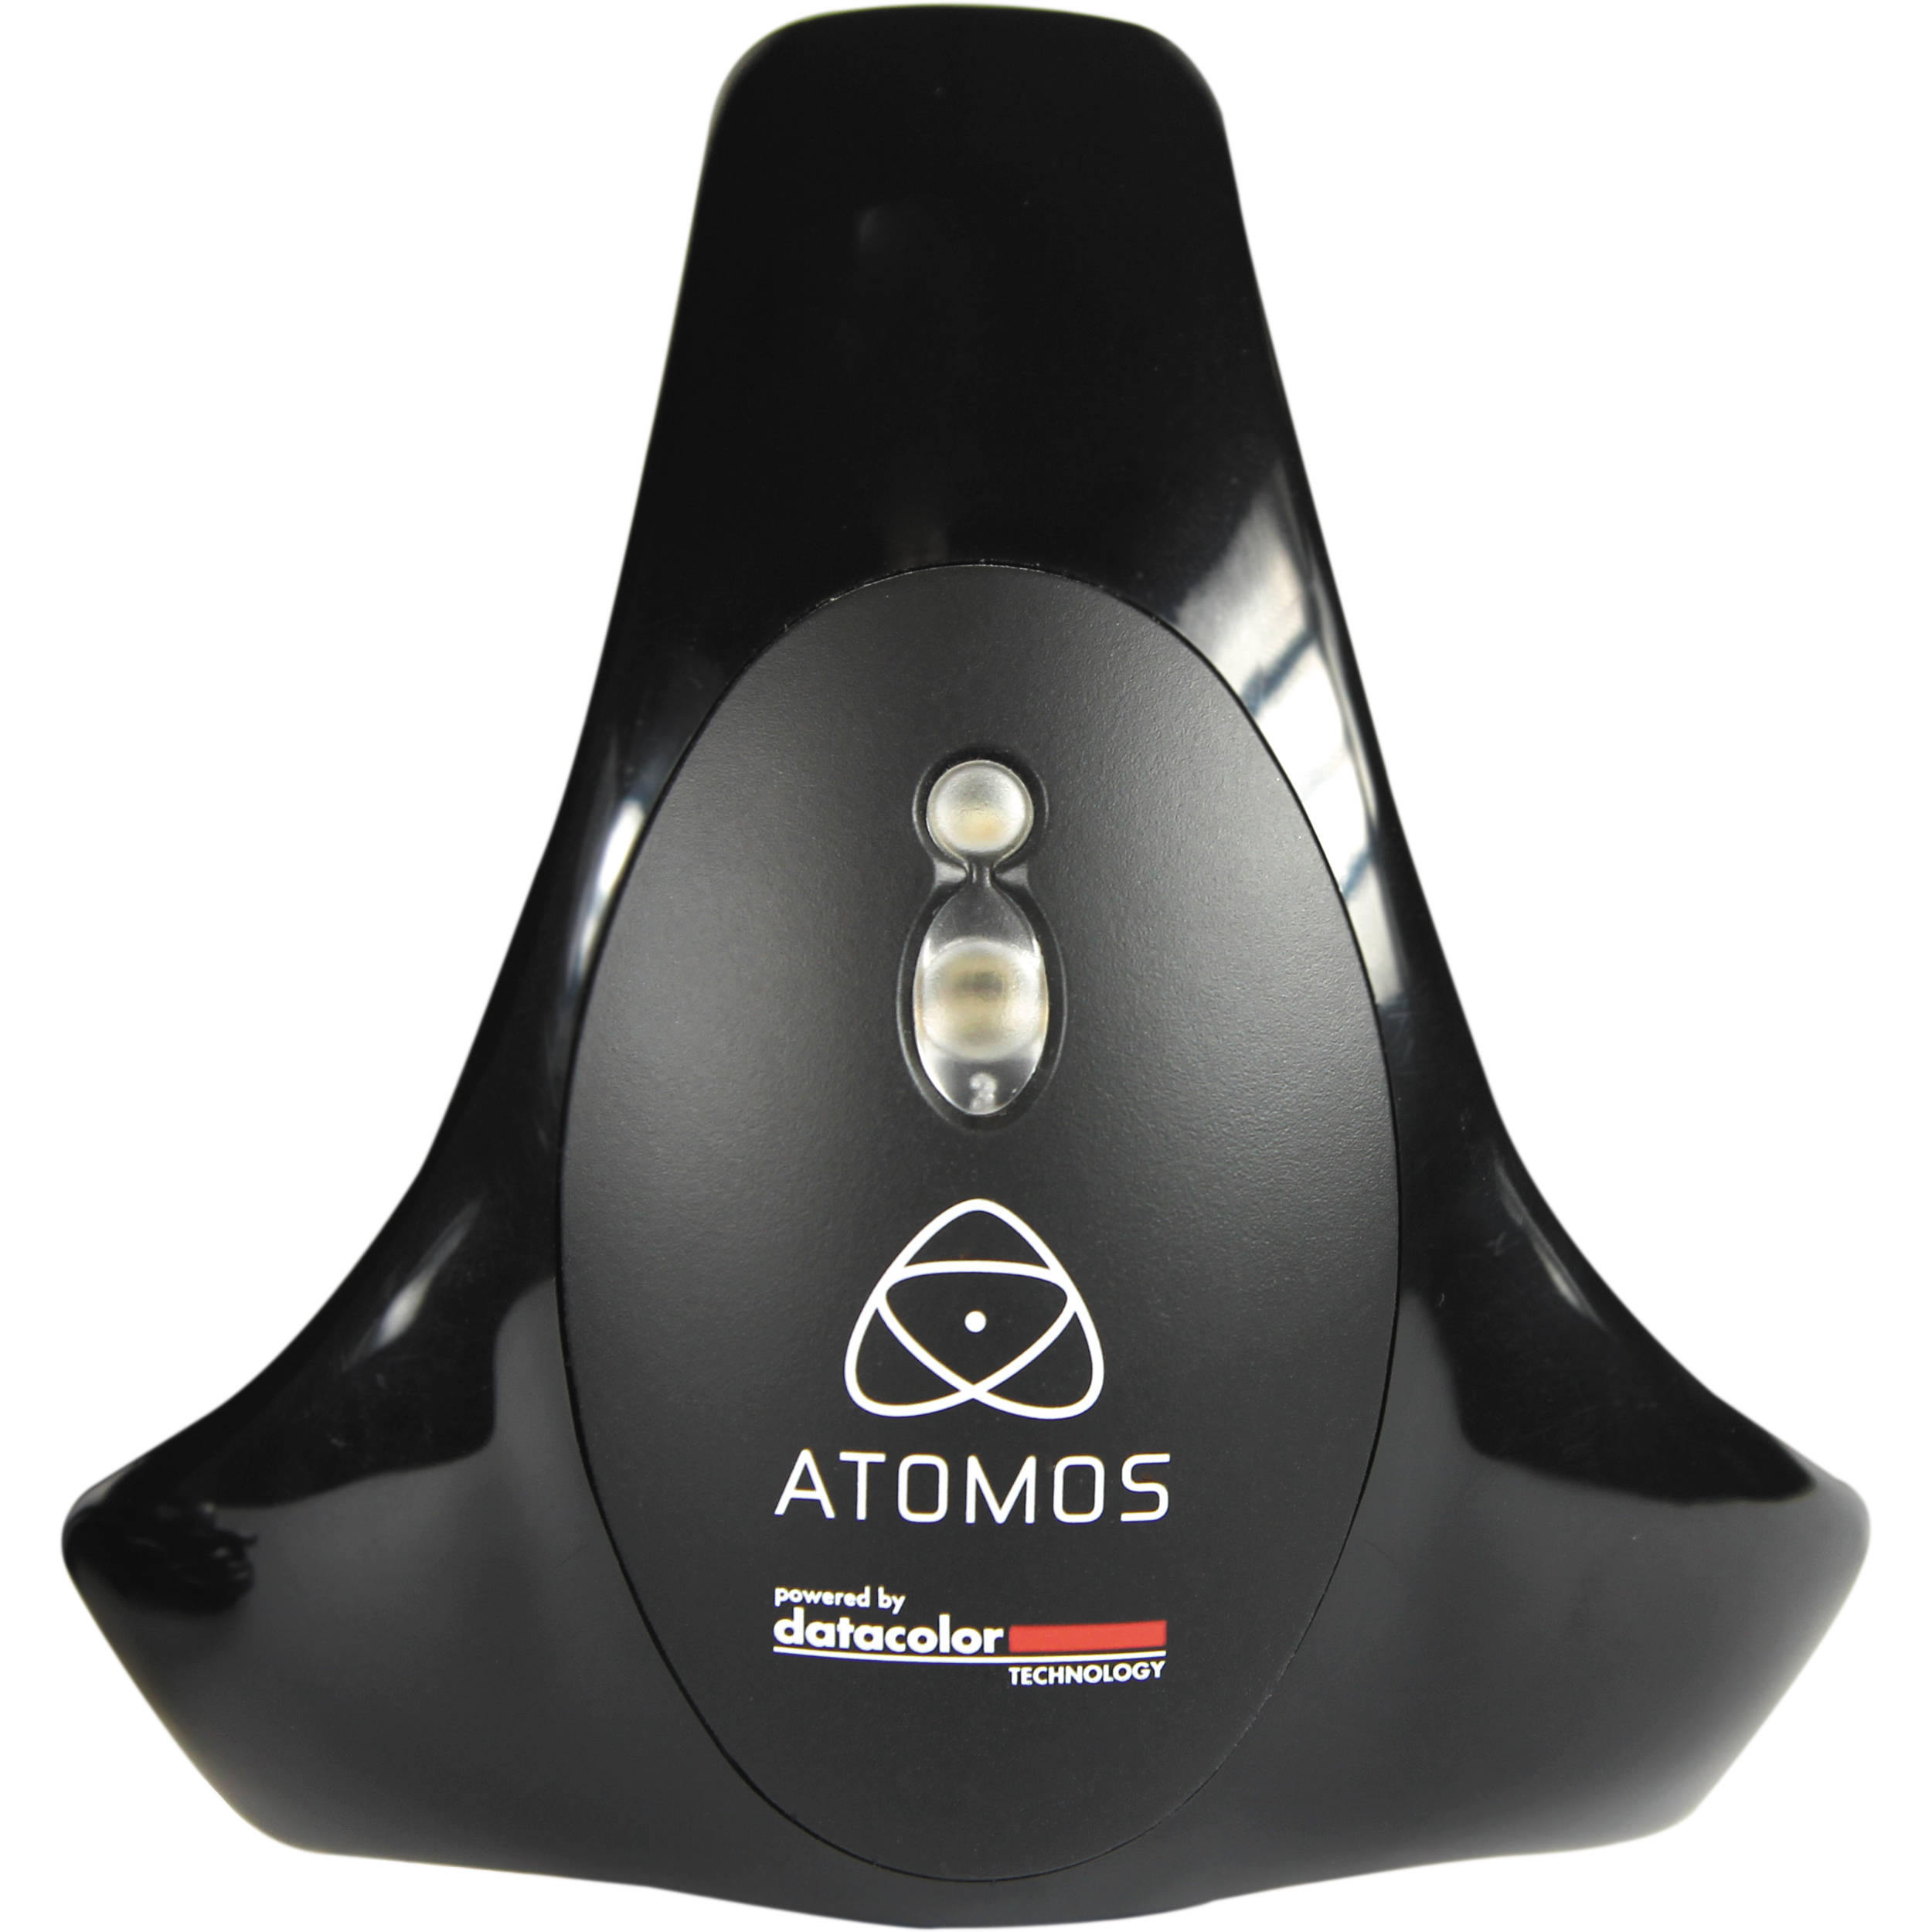 ATOMOS SPYDER WINDOWS 8.1 DRIVER